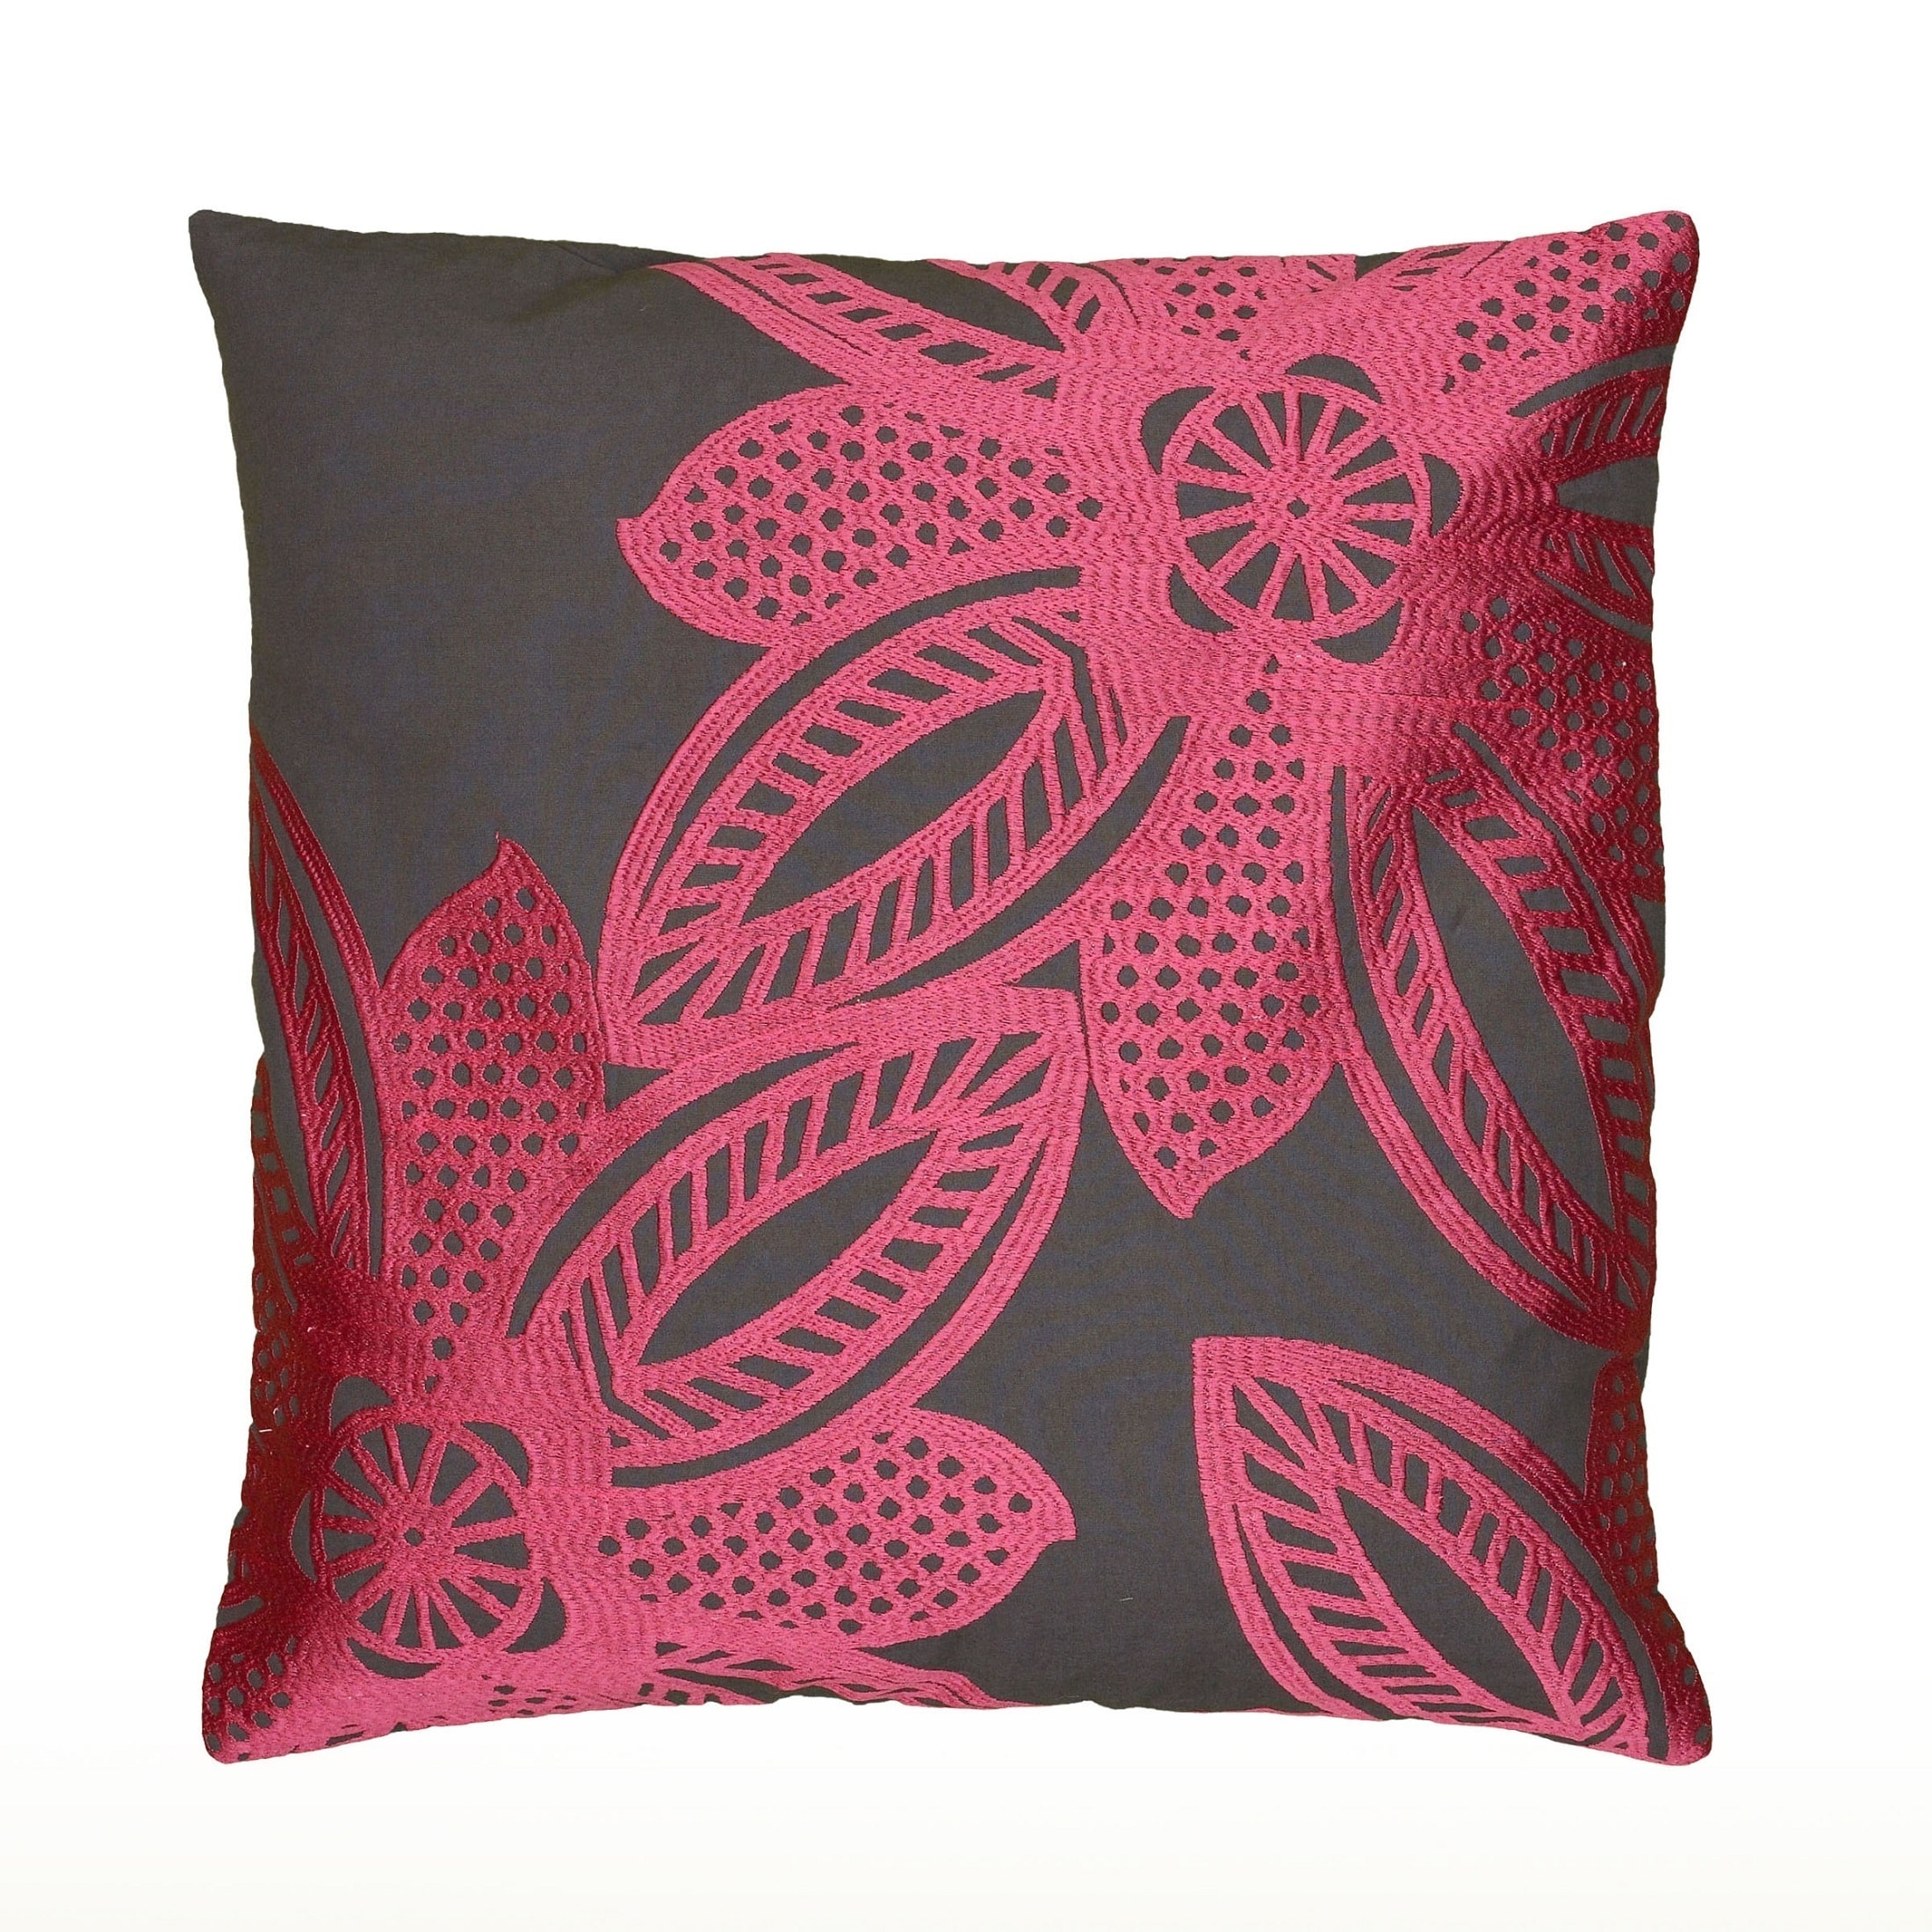 30 X 20 30 by 20-Inch Kess InHouse Nika Martinez Arabesque Pink Teal Standard Pillow Case